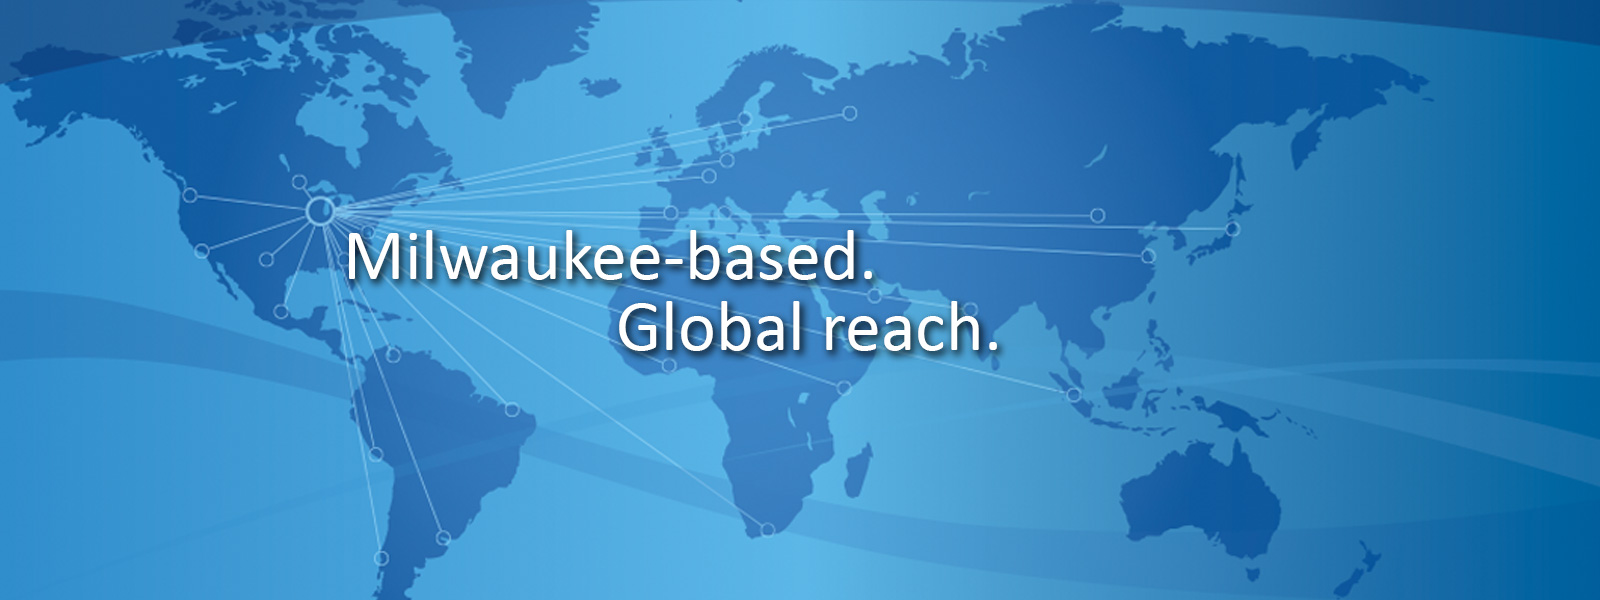 Milwaukee based. Global reach.